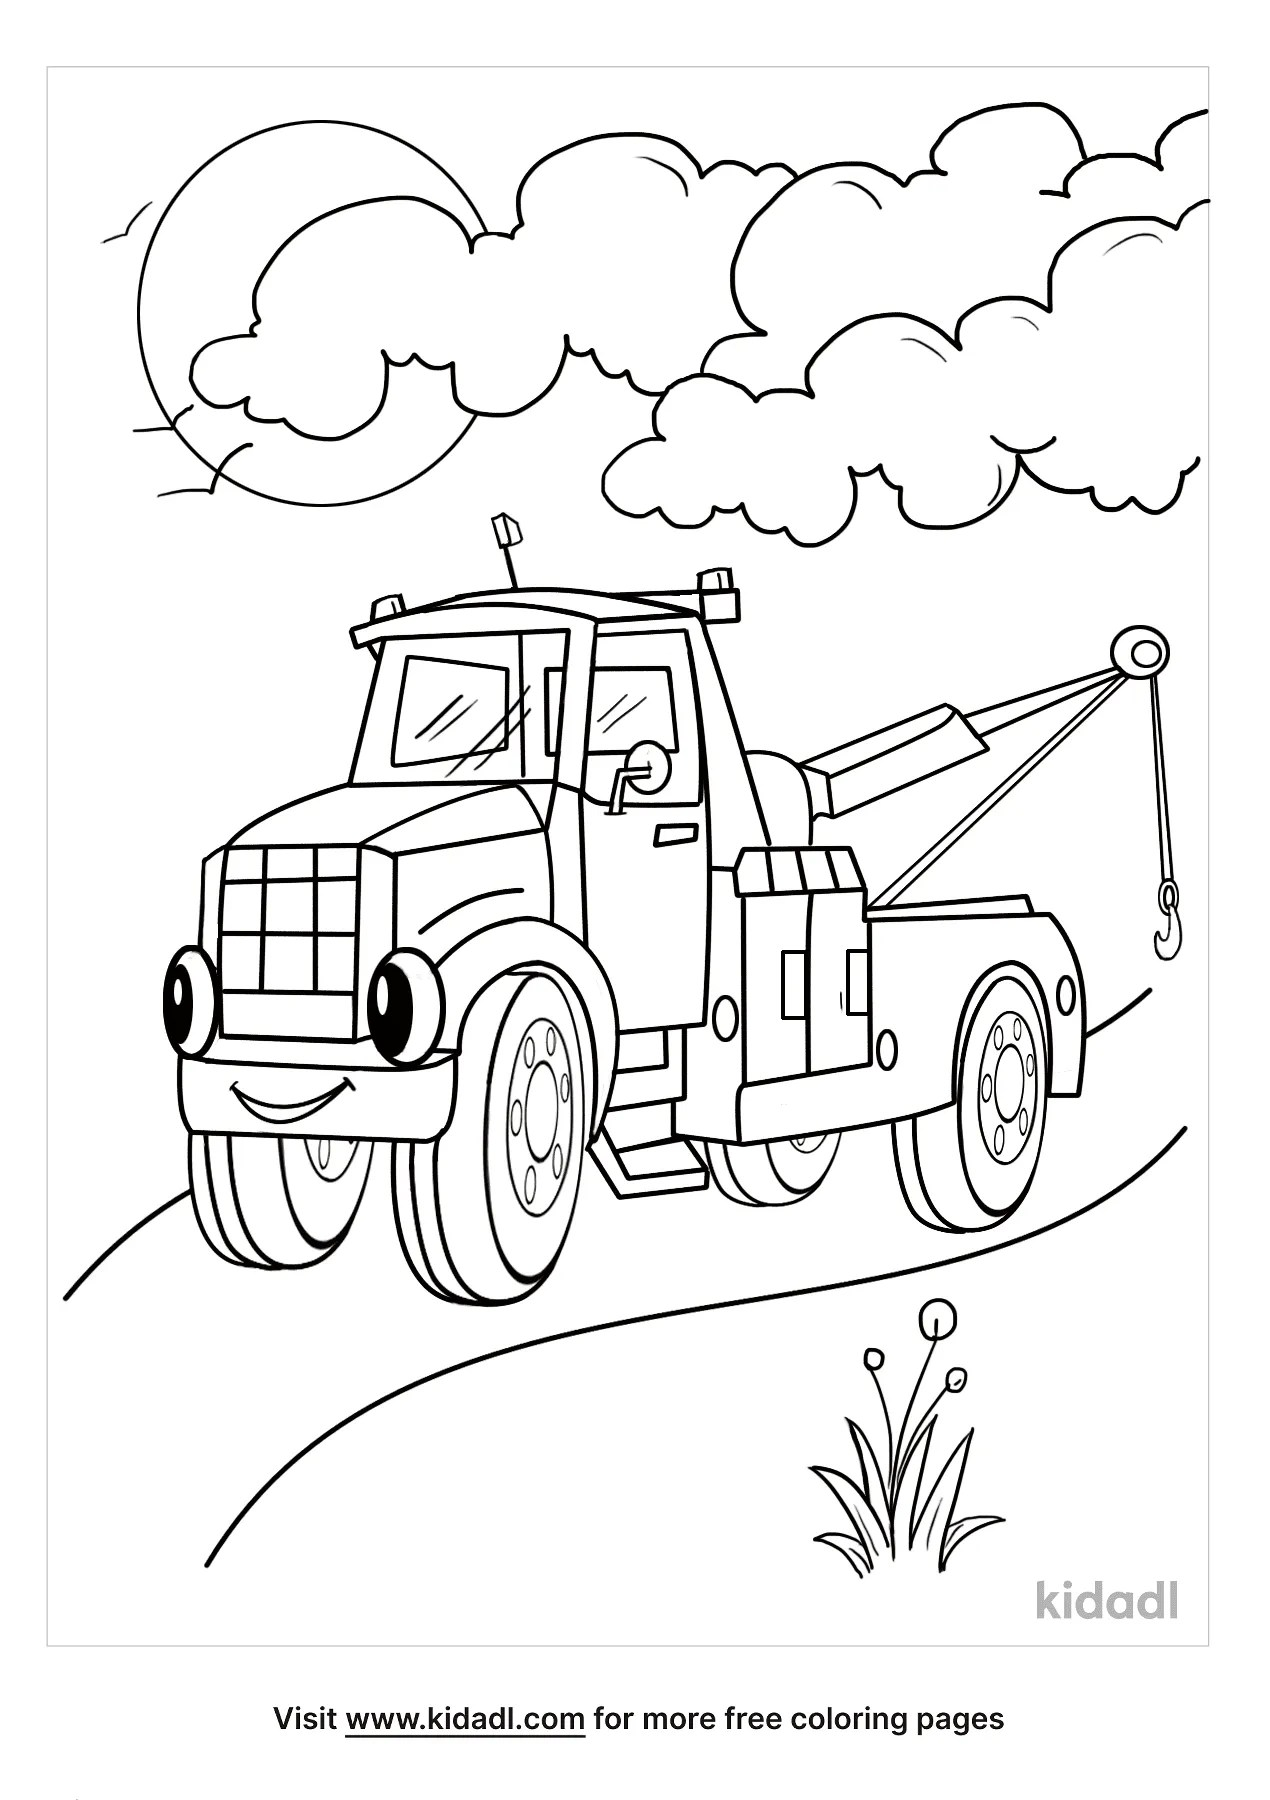 Tow Truck Coloring Page : truck, coloring, Truck, Coloring, Pages, Vehicles, Kidadl